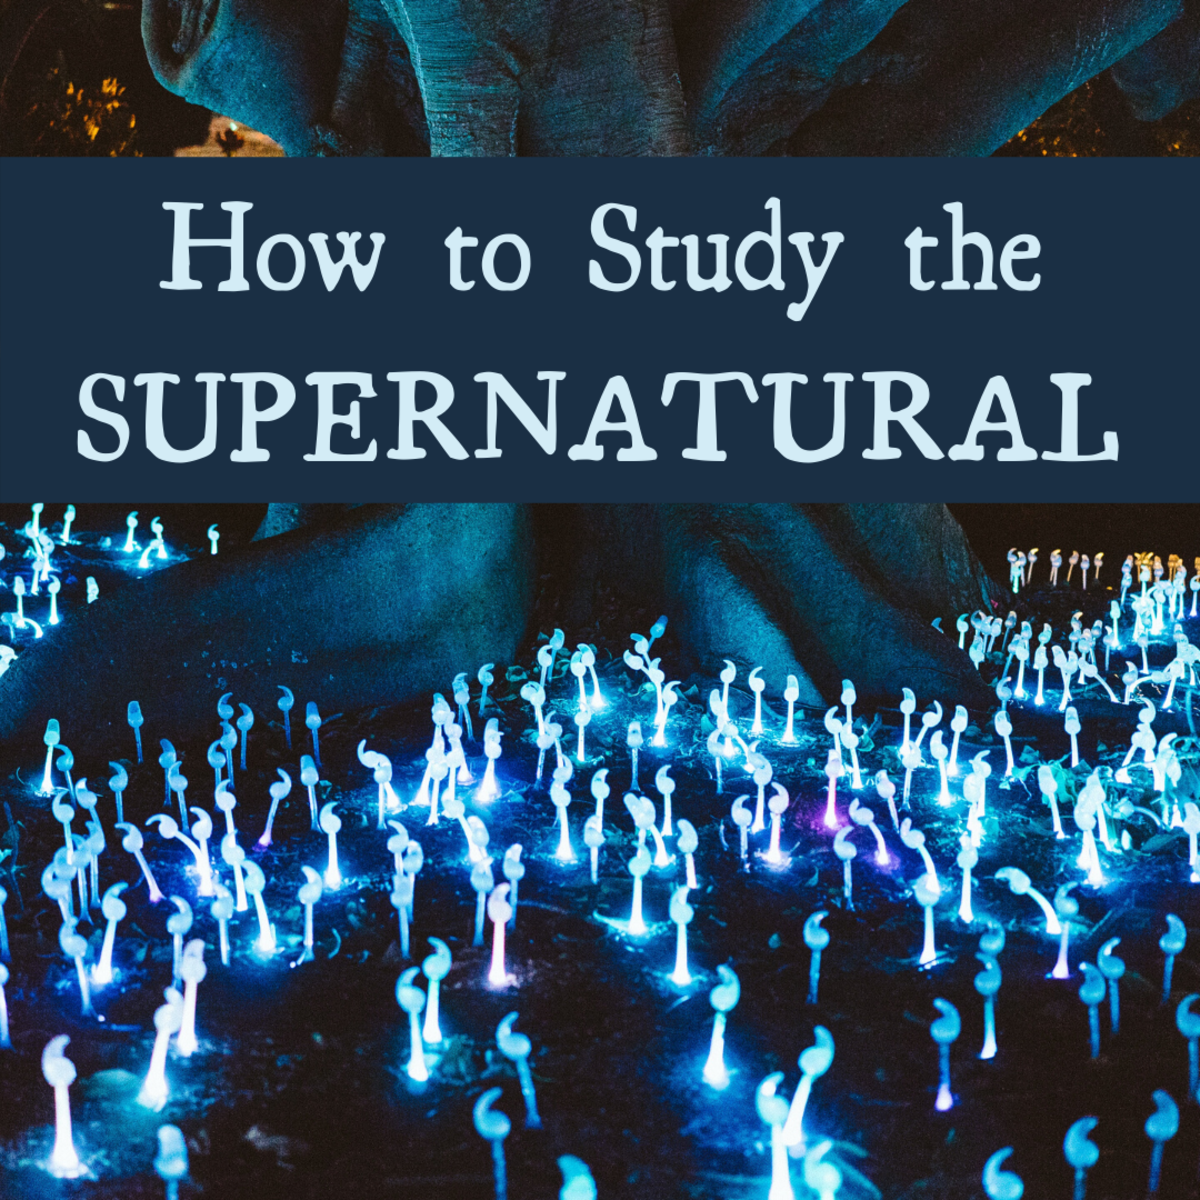 Get some advice on how to be a safe and effective paranormal investigator.